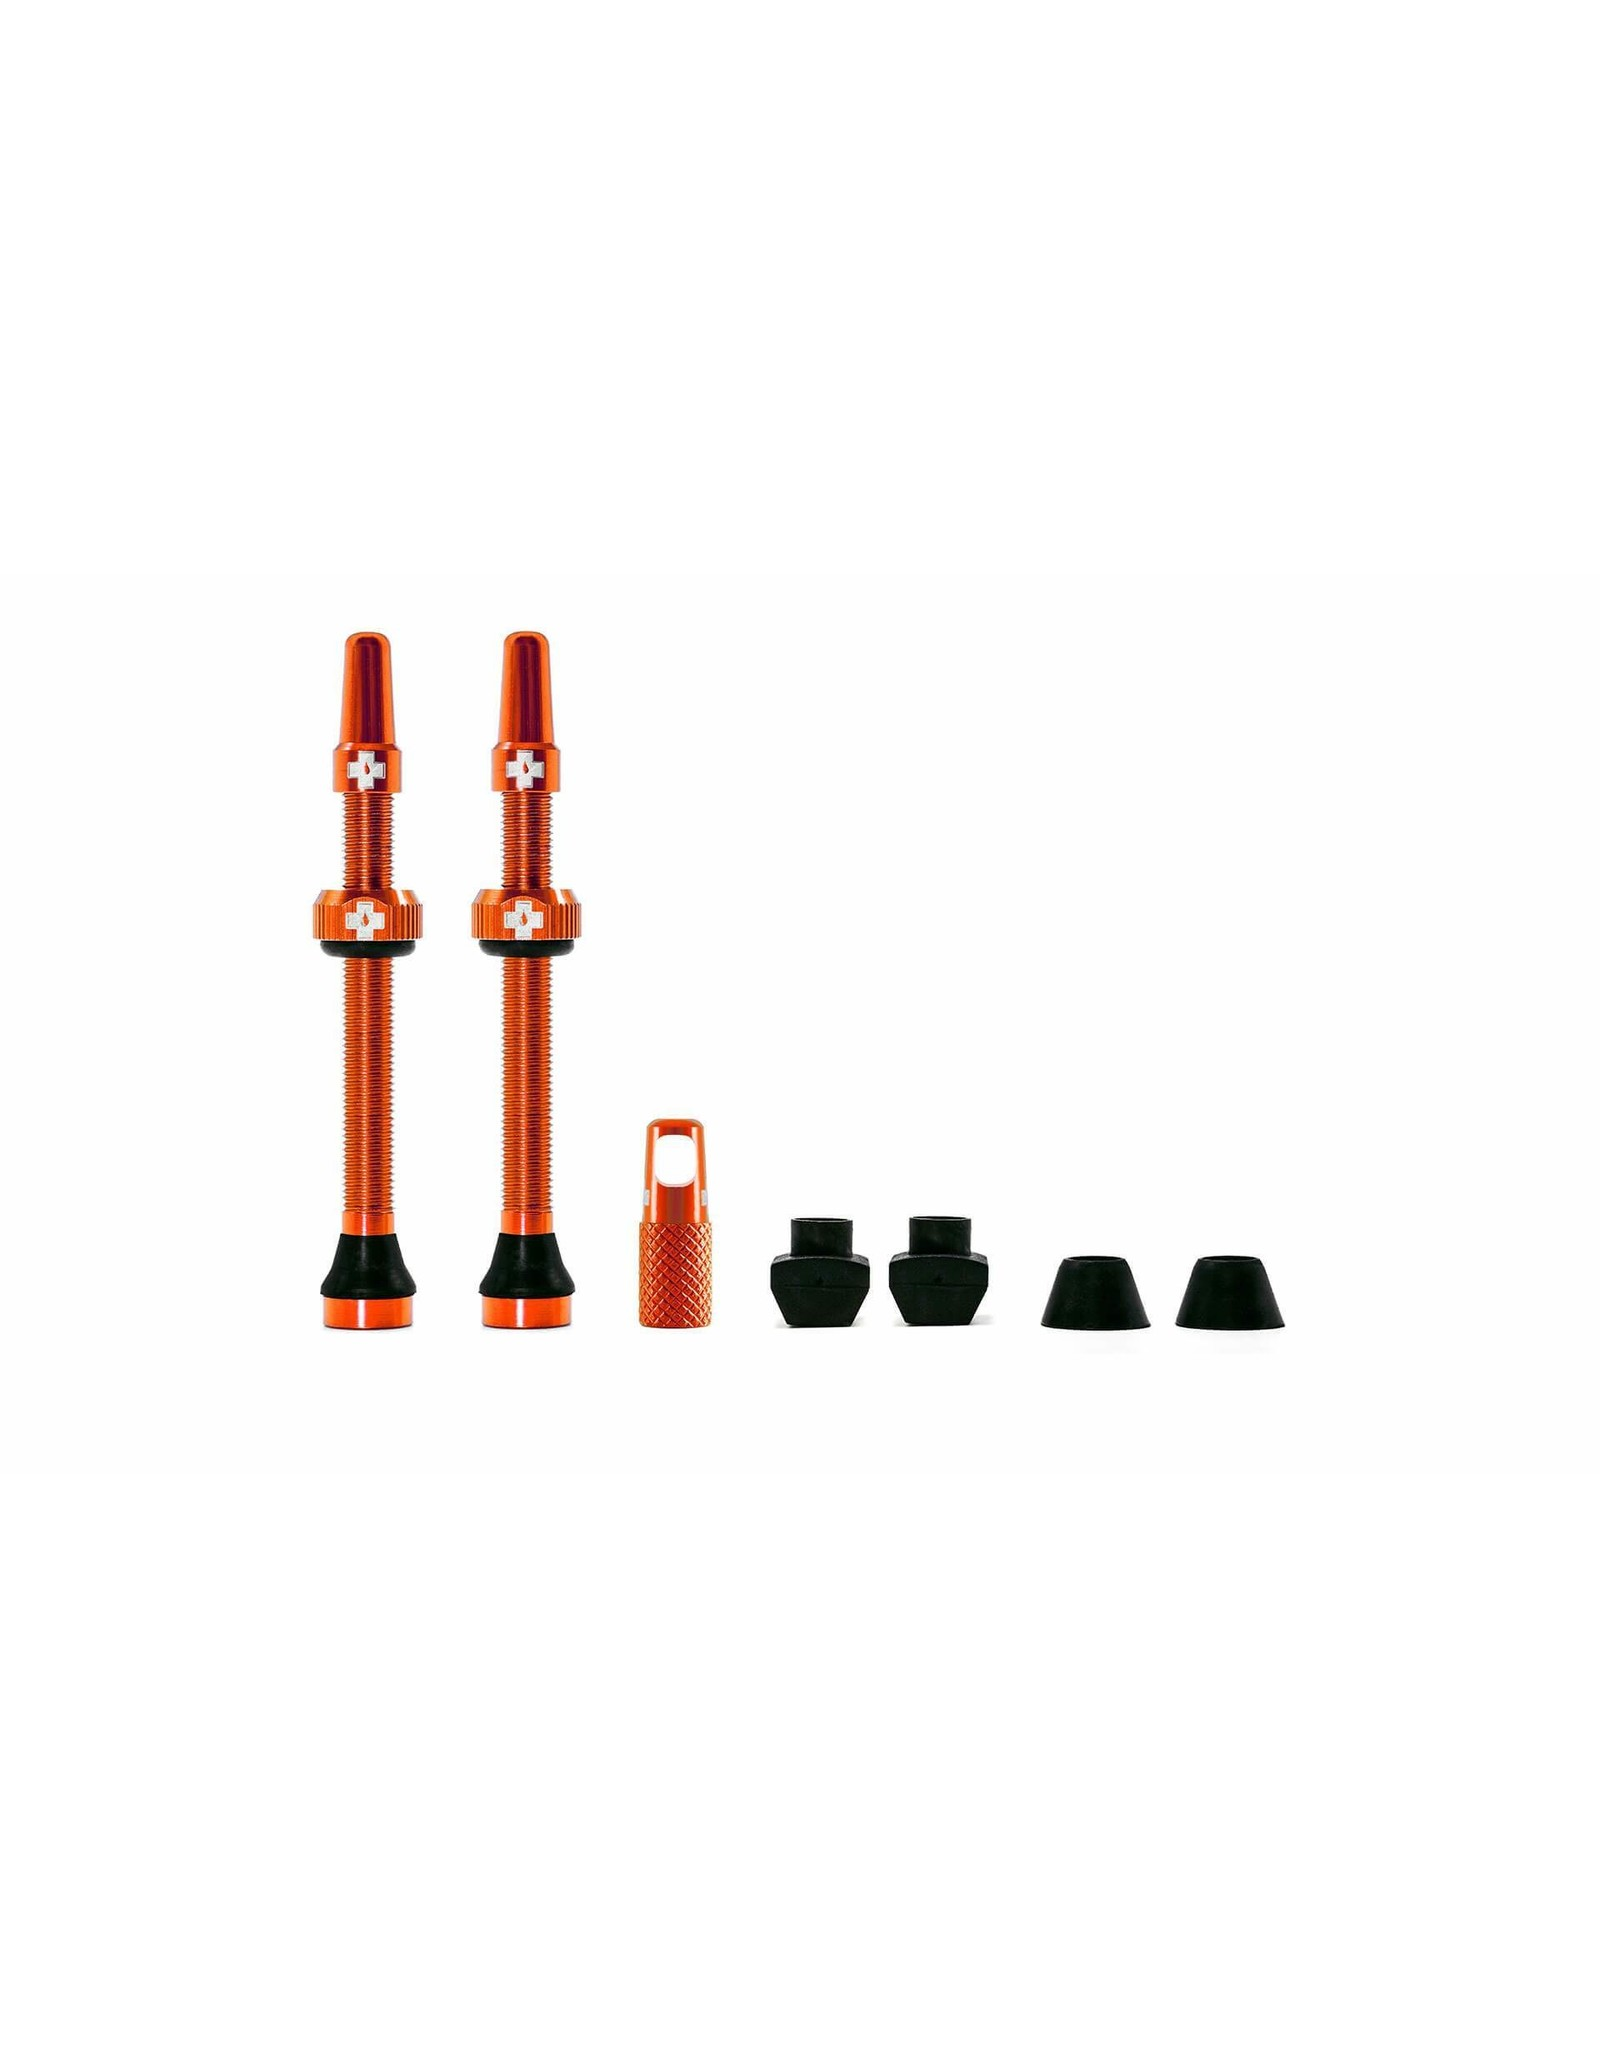 Muc-Off Muc-Off Presta Valve Stem, 60mm Universal, Pair - Orange